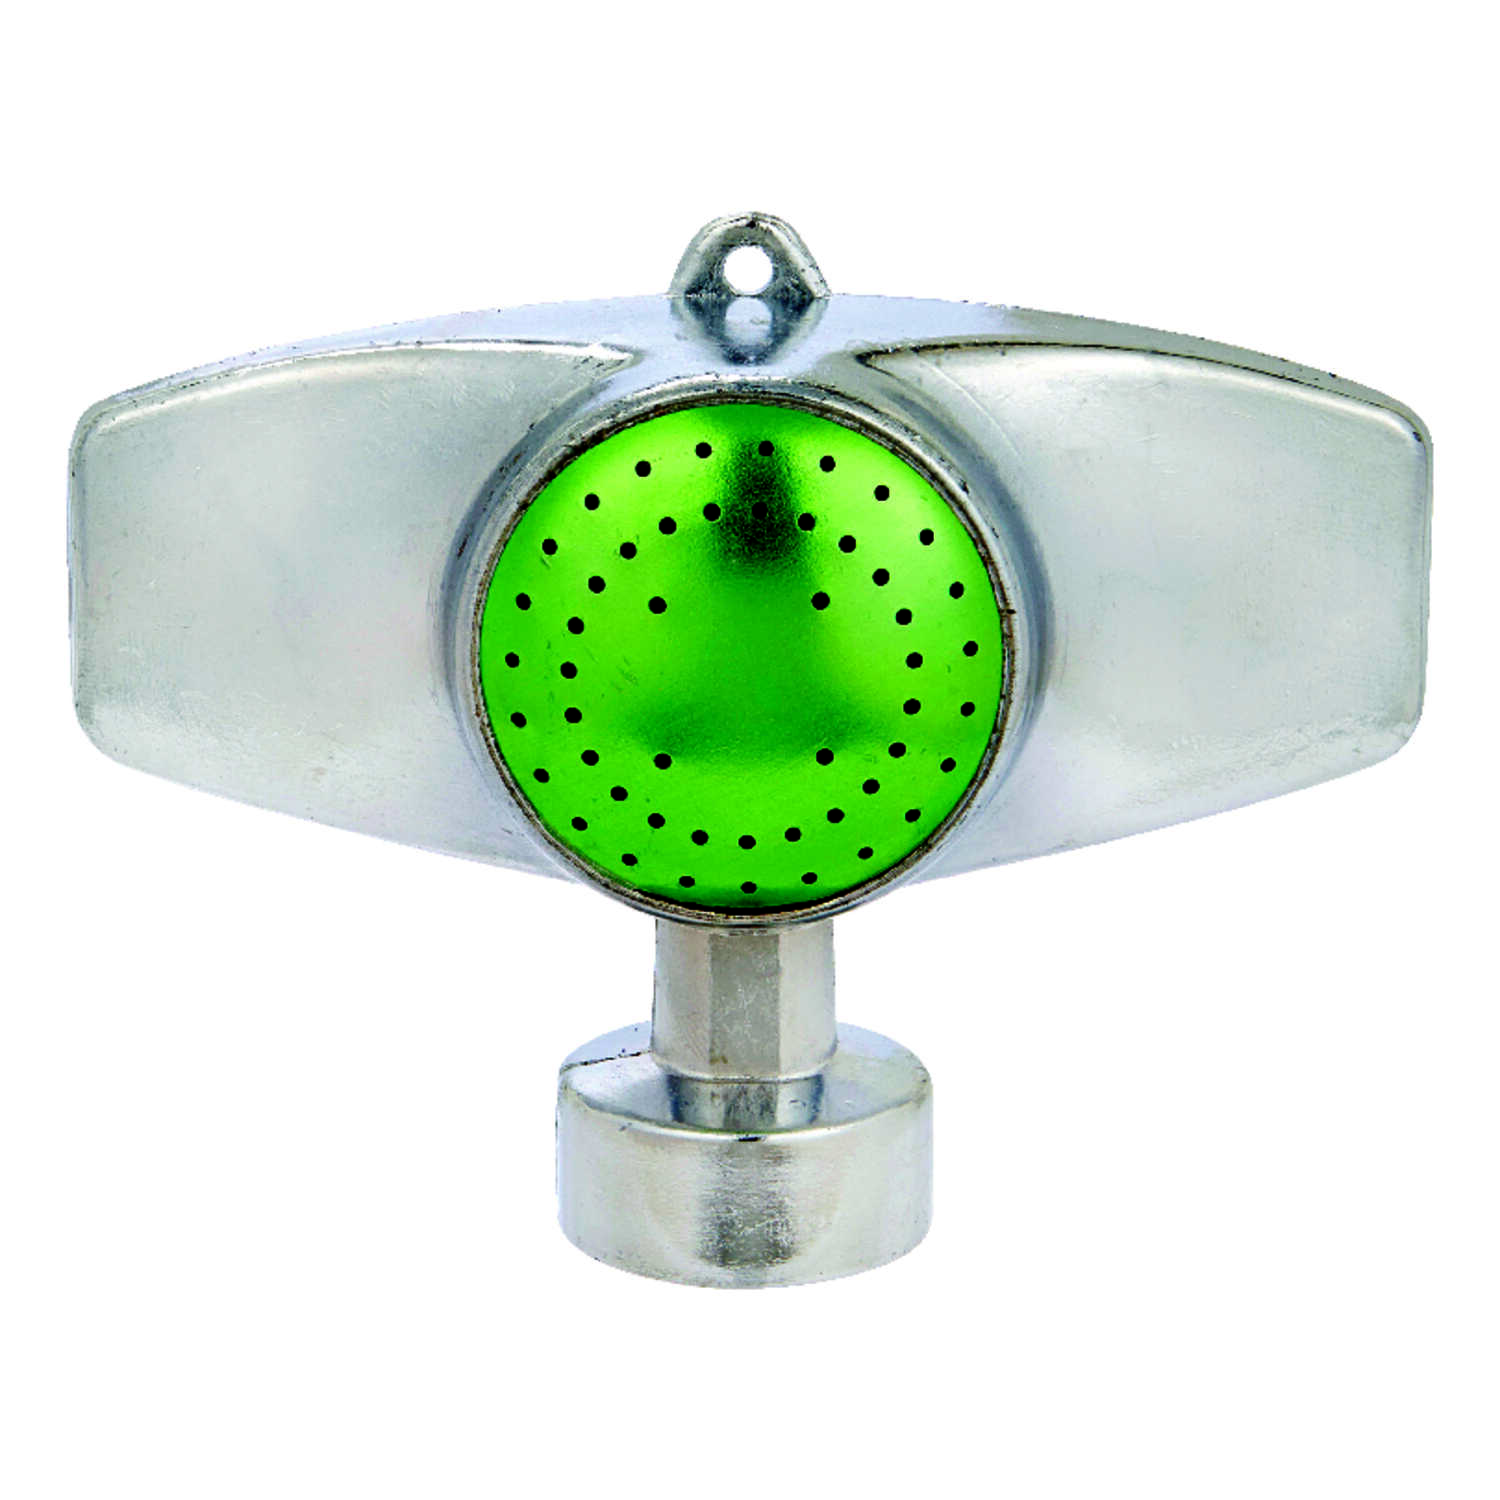 Ace  Zinc  Sled Base  Spot Sprinkler  700 sq. ft.